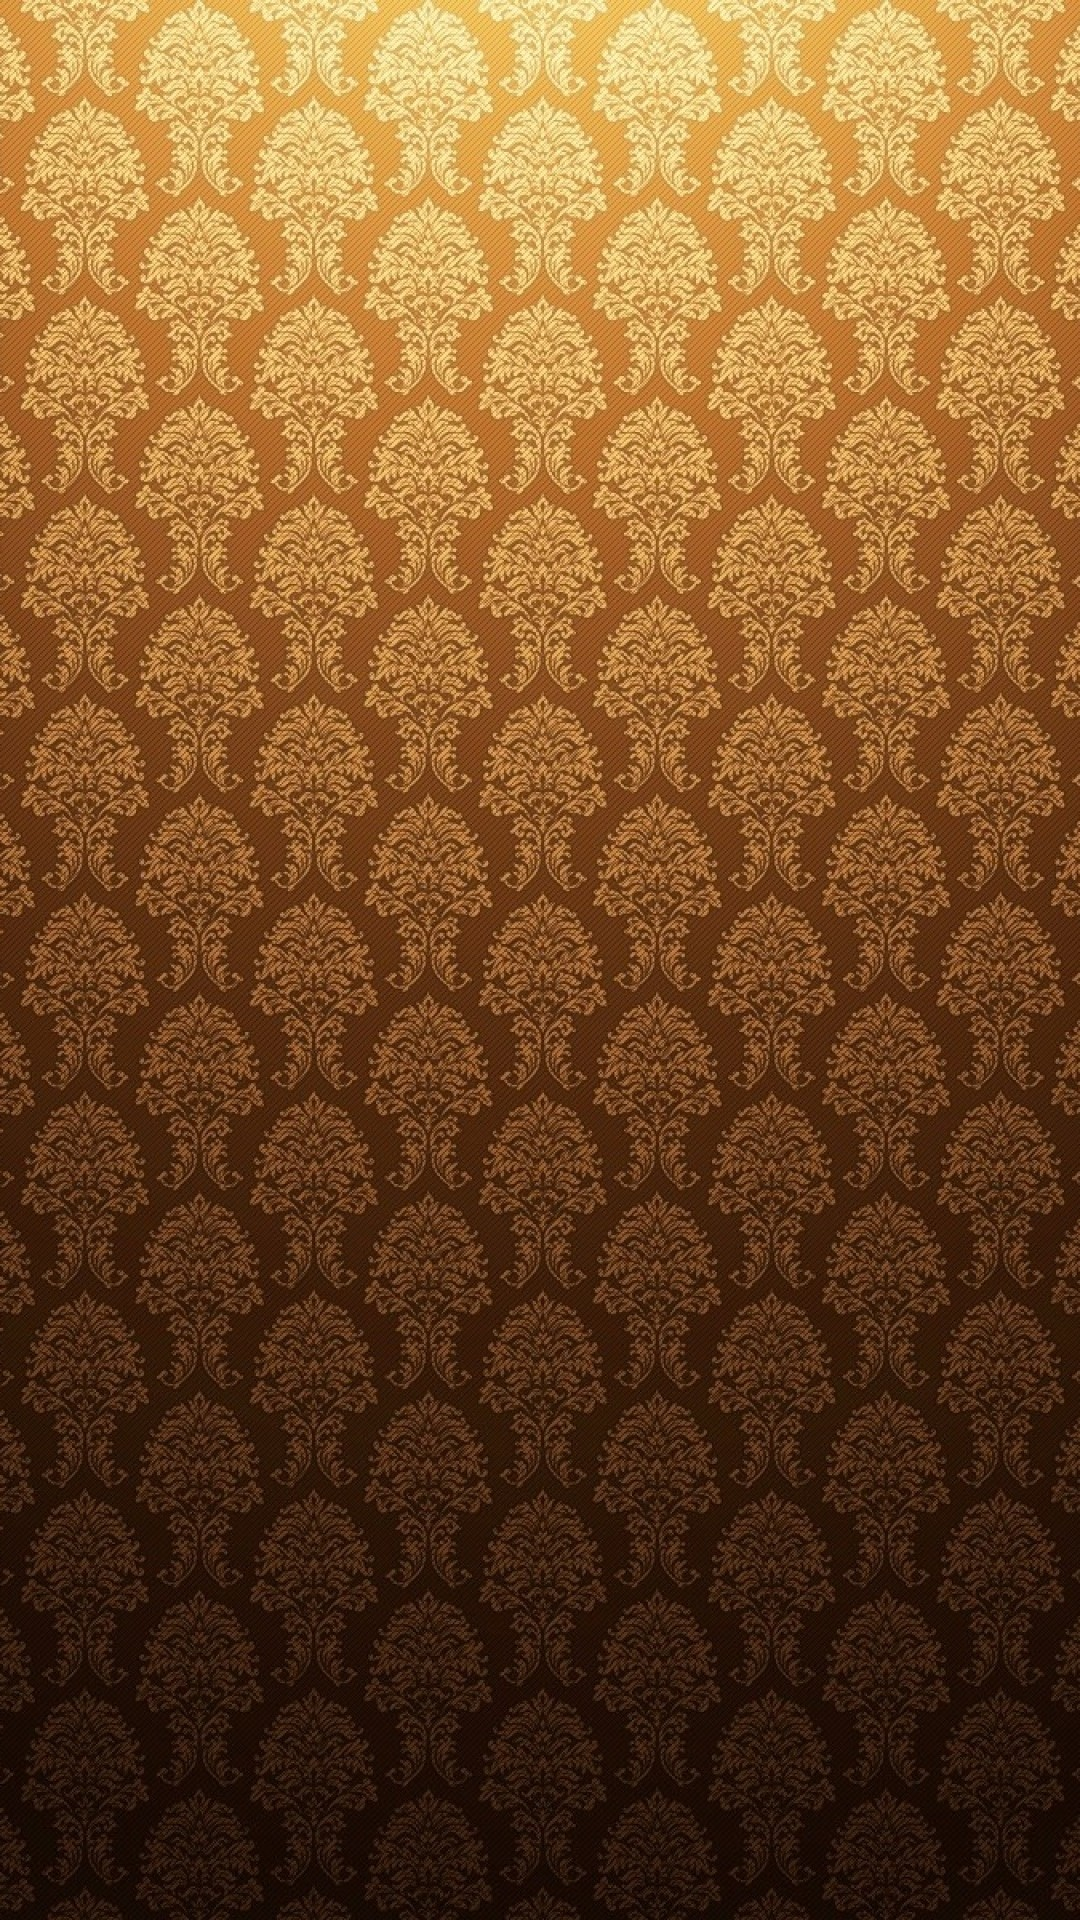 Preview wallpaper gold, antique, background, patterns 1080×1920